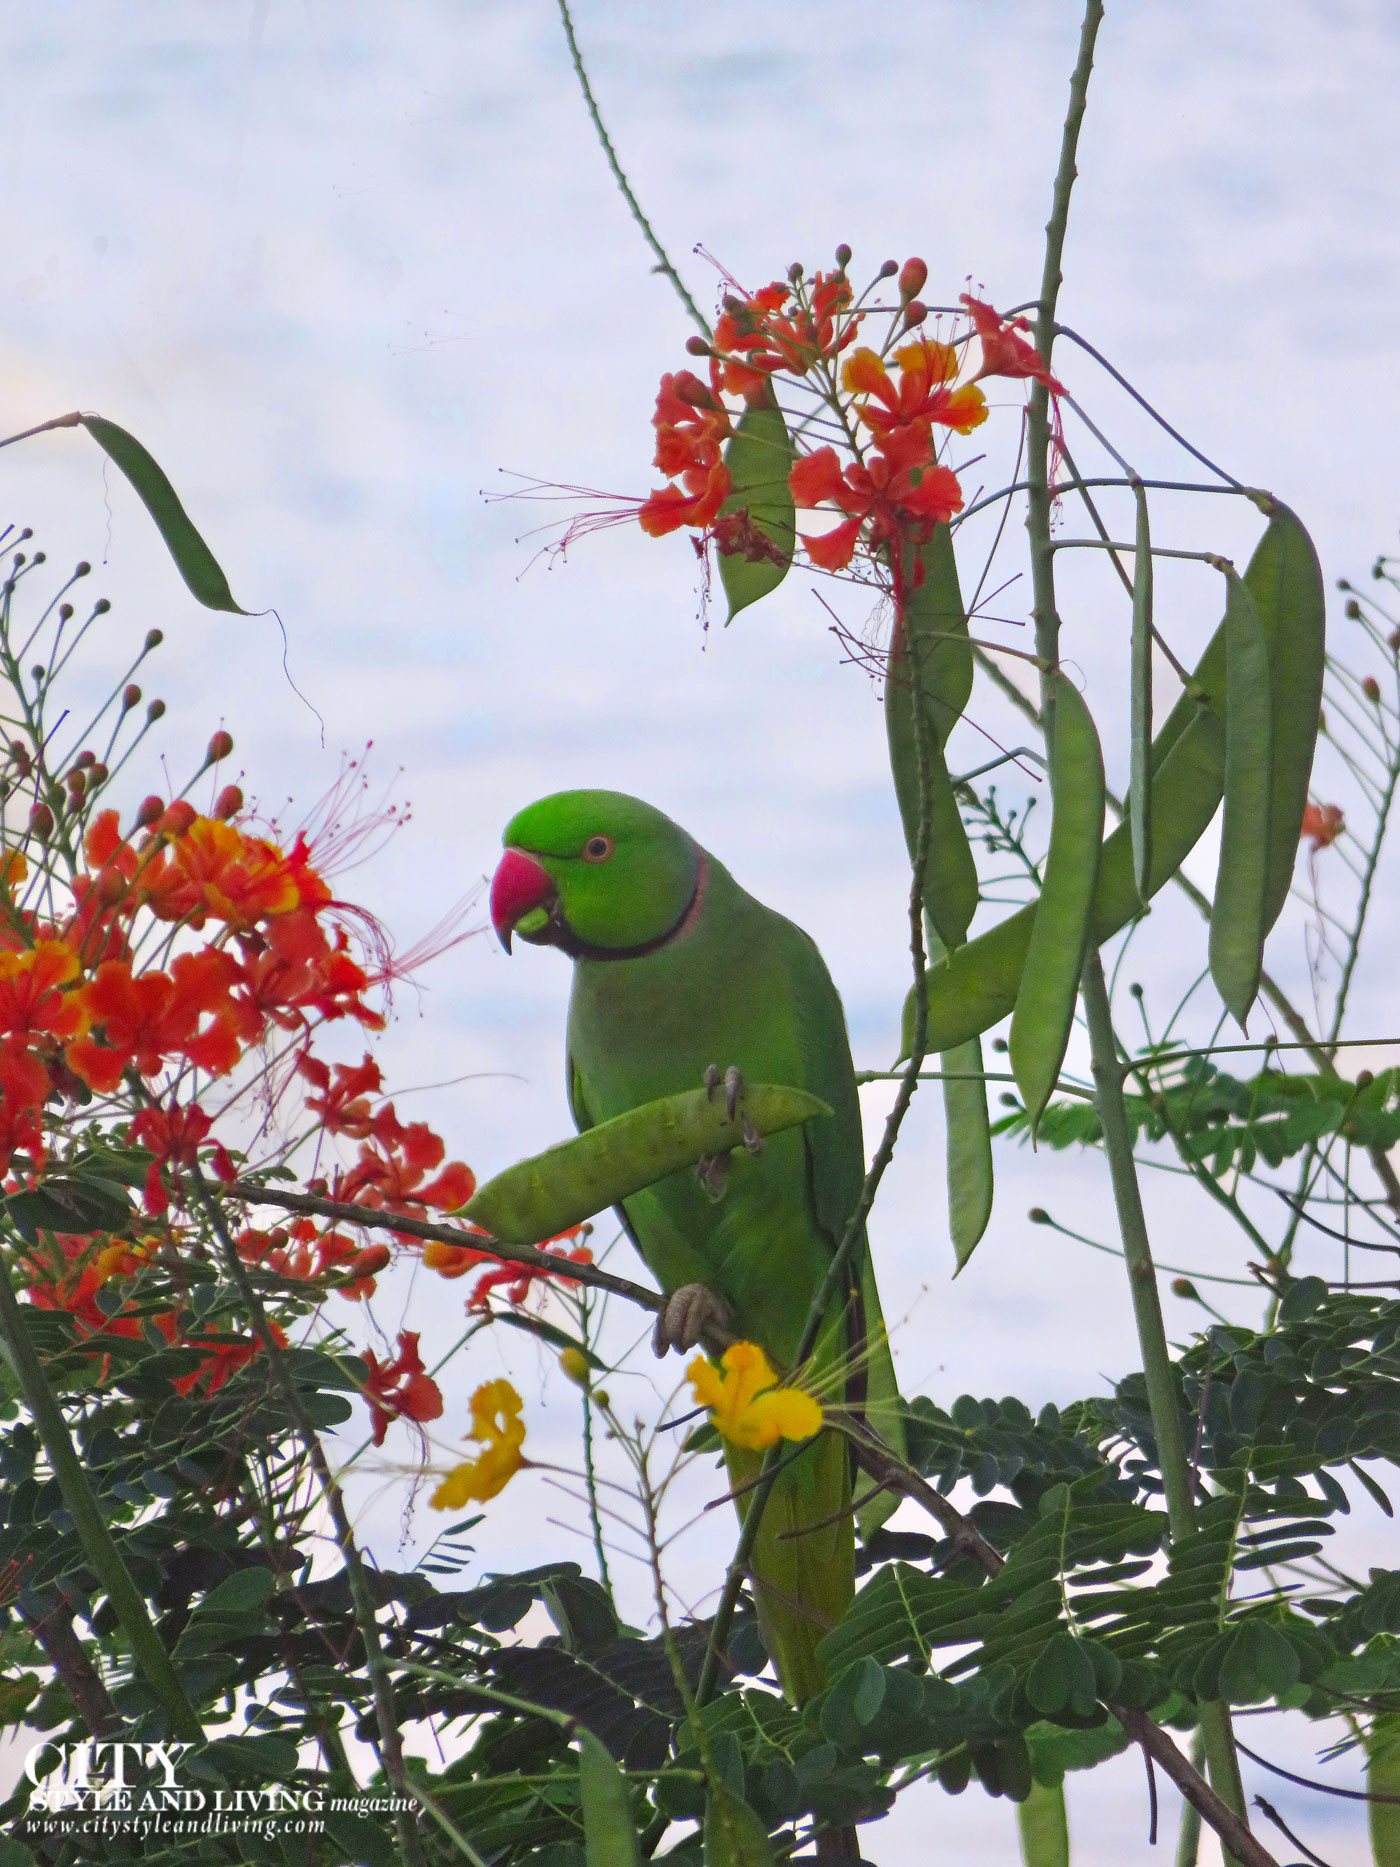 City Style and Living Magazine Winter 2019 Barbados Yellow Bird hotel Kailash Maharaj green bird in tree